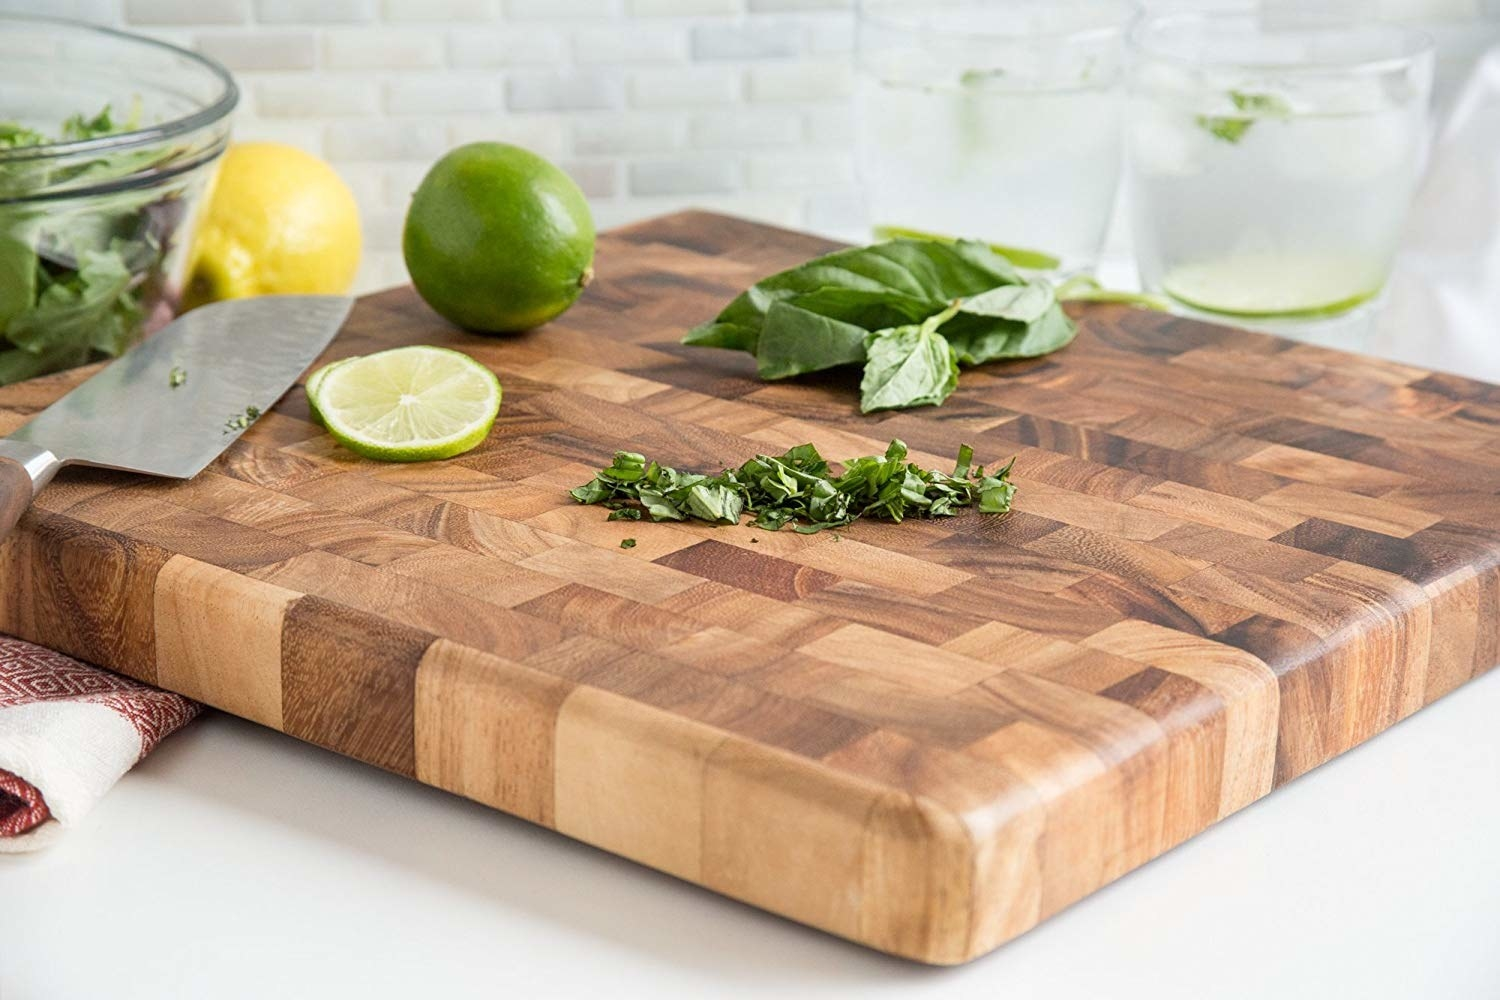 Patchwork cutting board with several shades of wood pieced together into a smooth surface